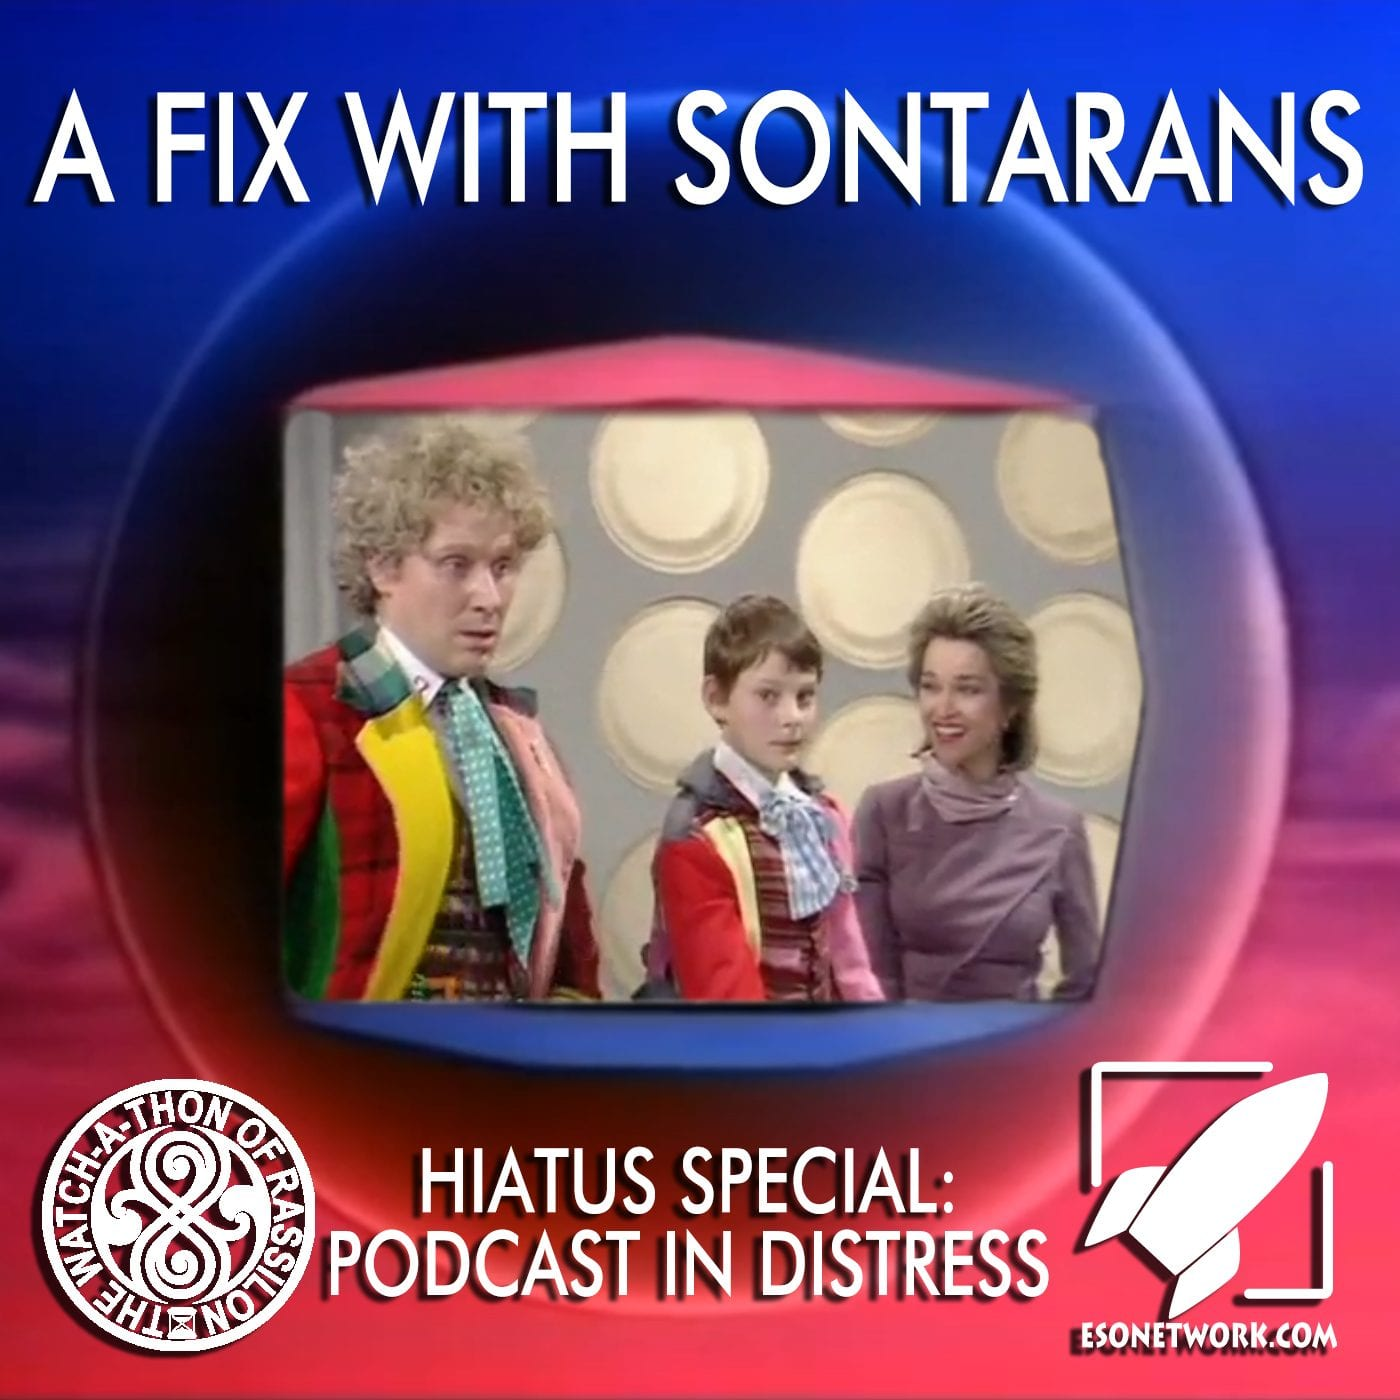 The Watch-A-Thon of Rassilon: Hiatus Special: A Fix with Sontarans-Podcast in Distress